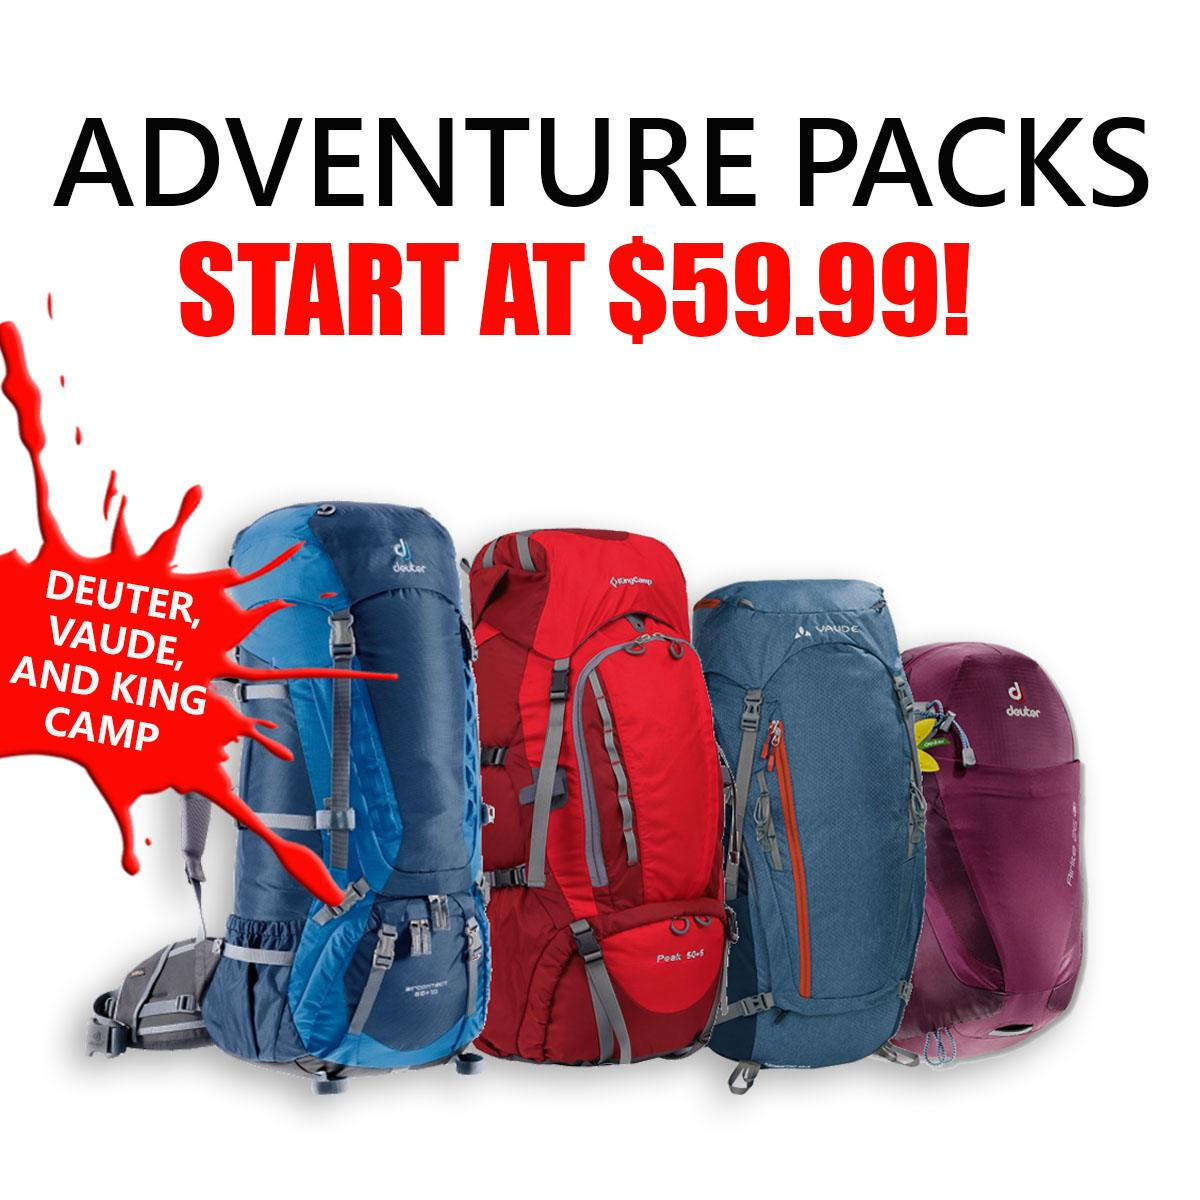 online store 9d73f 54f4e Camping Equipment Clearance in Vancouver - Sports Junkies